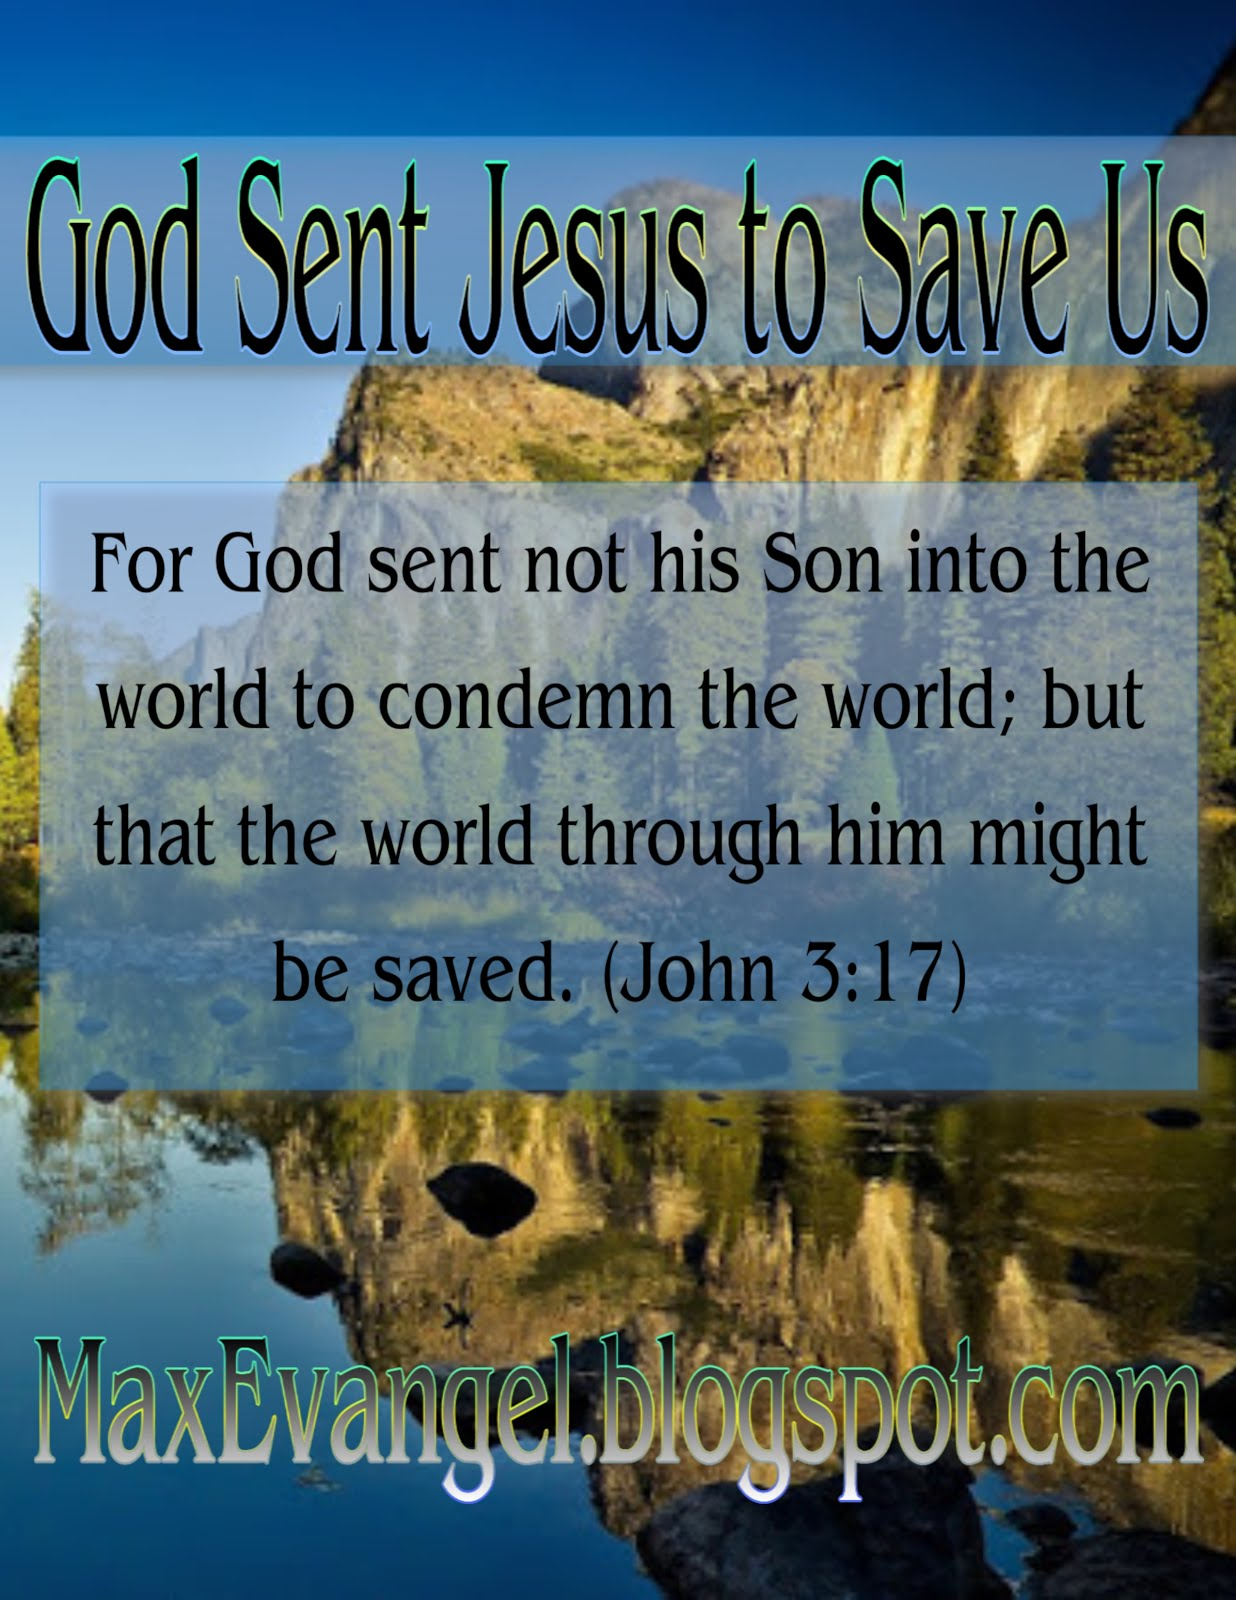 We Need Jesus the Savior